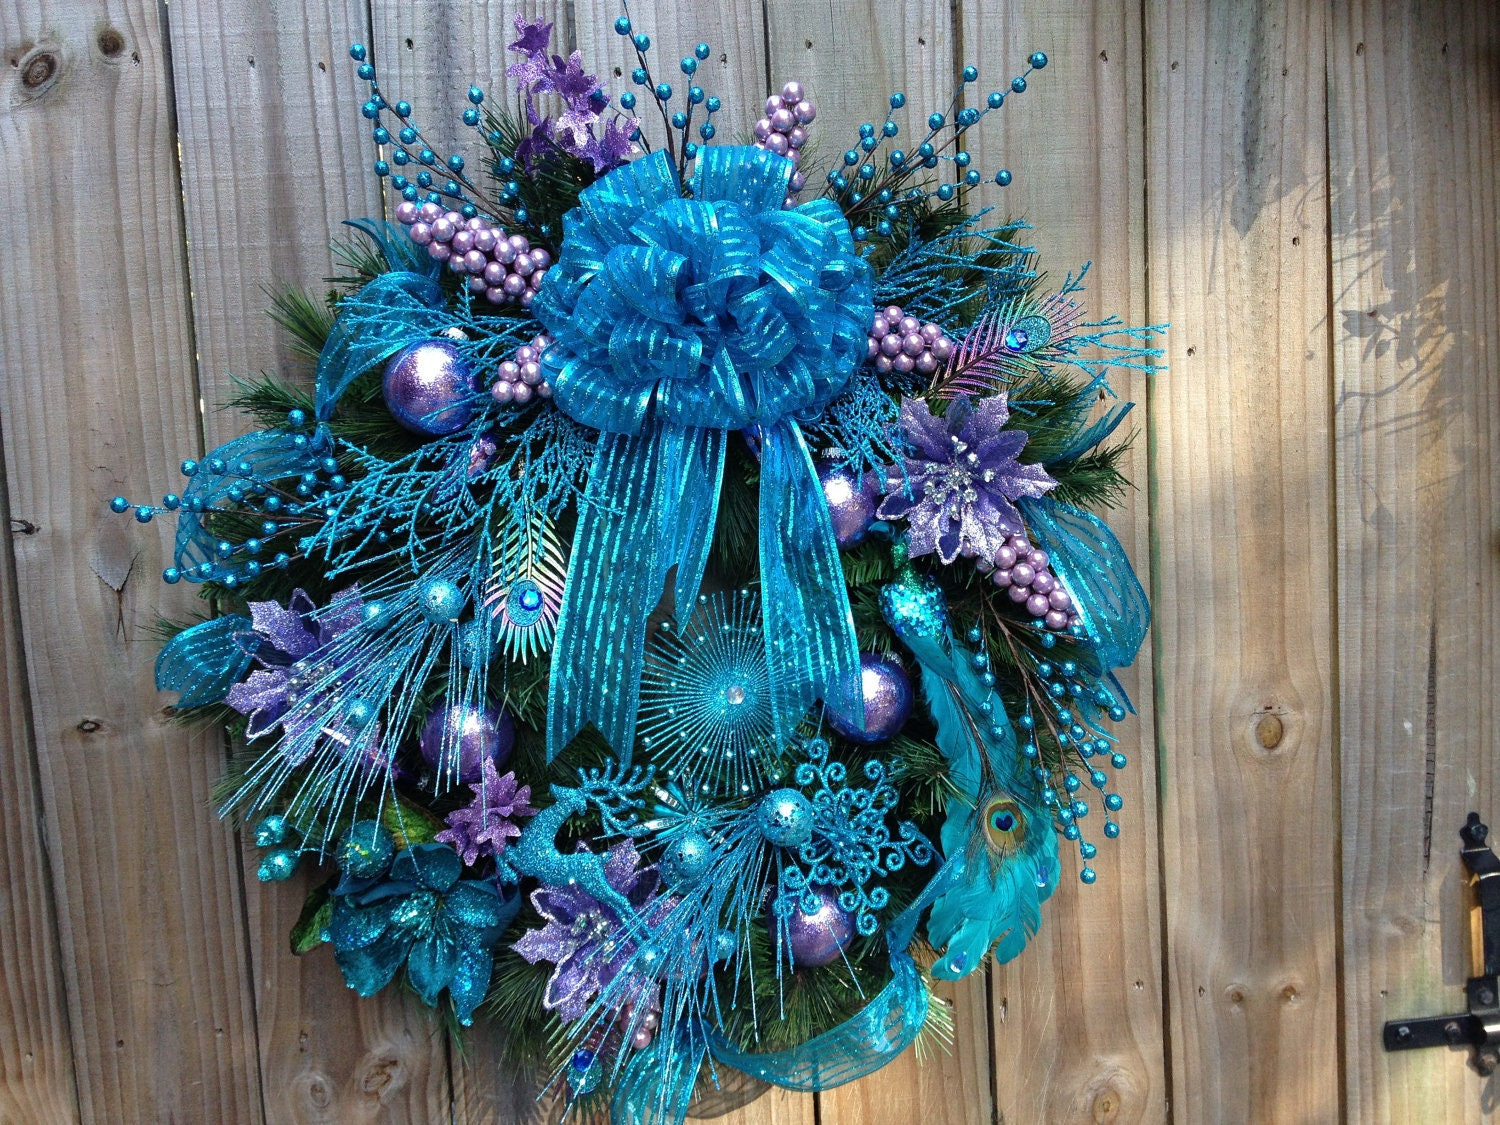 ideas for wedding pictures in the rain - Teal and Lavender Peacock Christmas Wreath